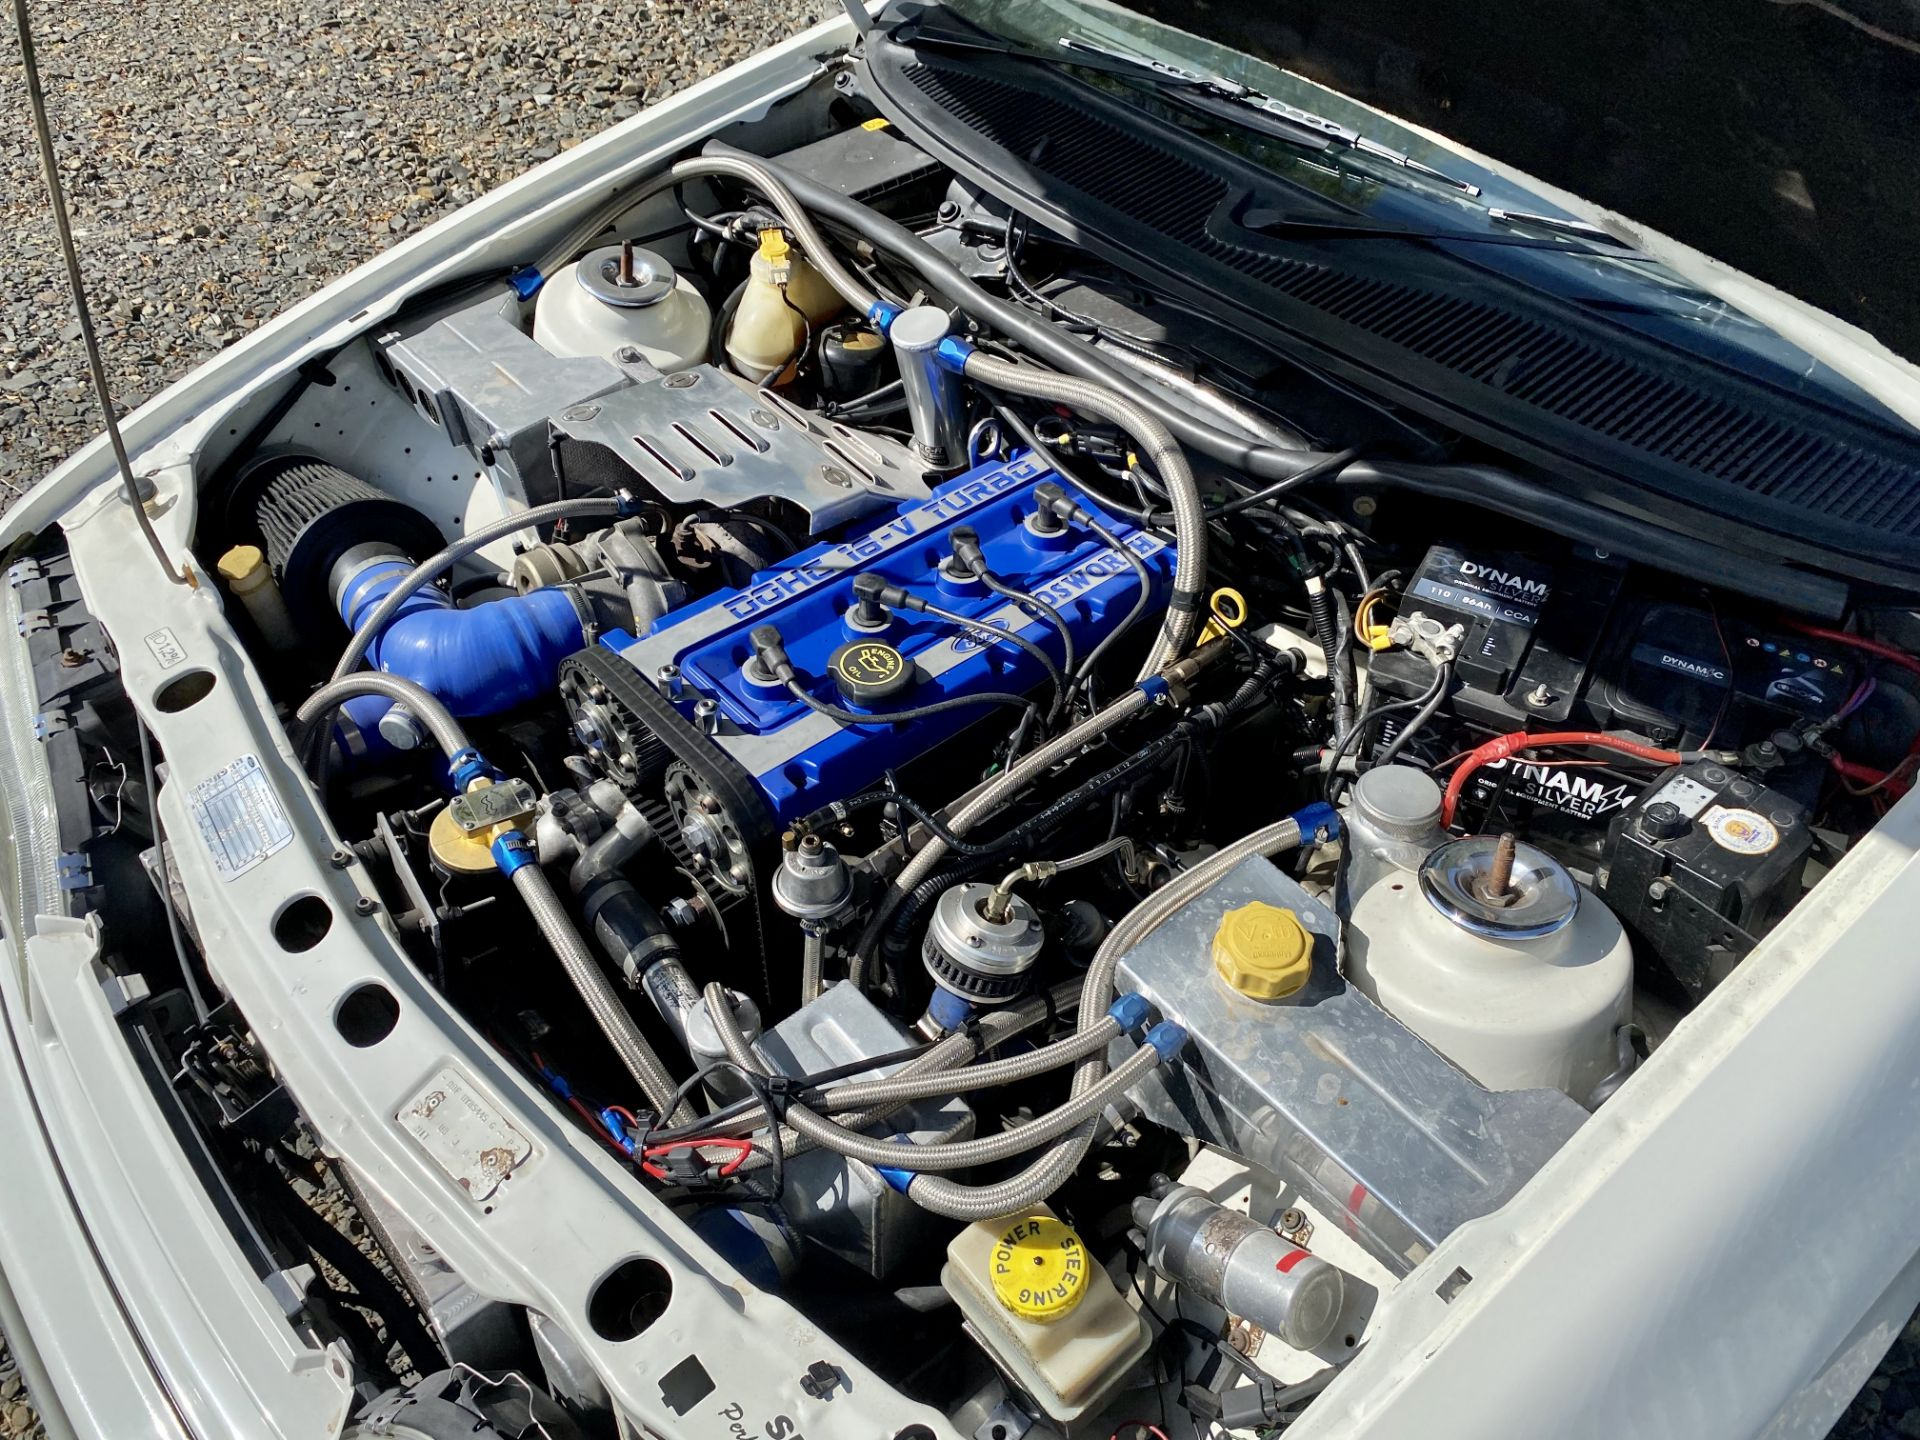 Ford Sierra Sapphire Cosworth 4x4 - Image 54 of 55